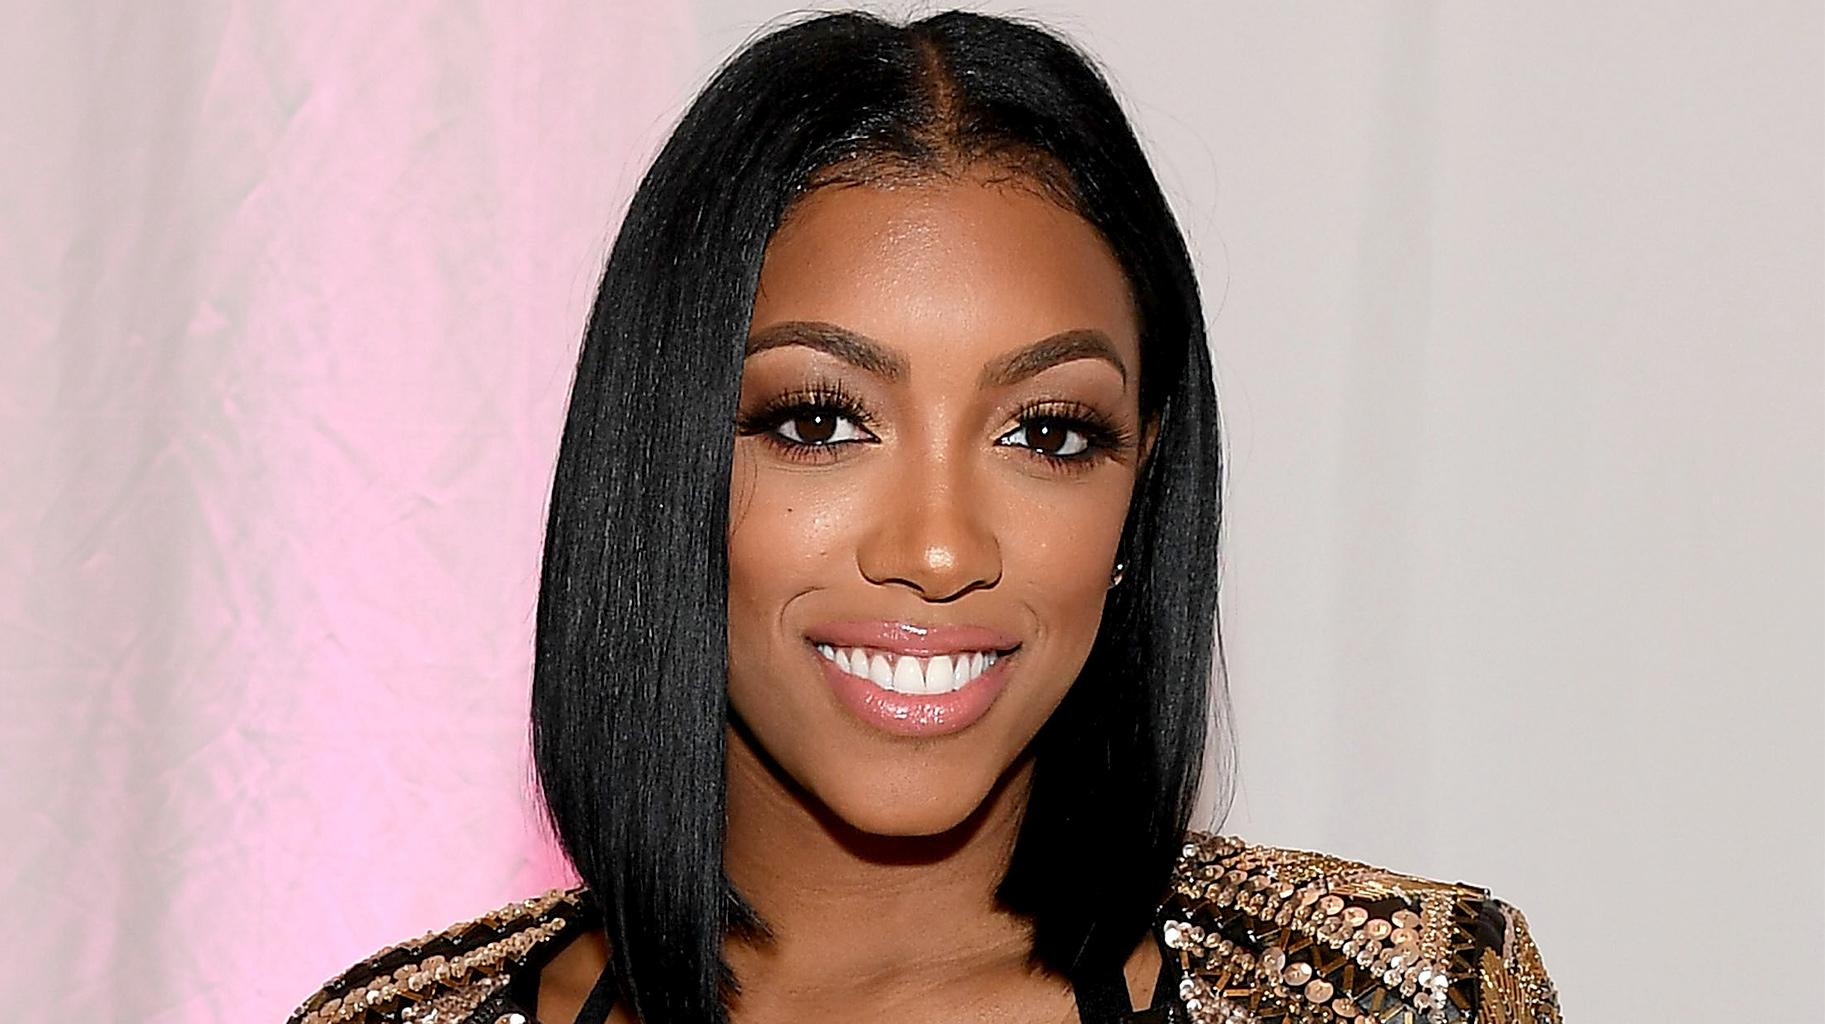 Porsha Williams Flaunts A New Hairdo - Fans Are Here For Her Short Hair